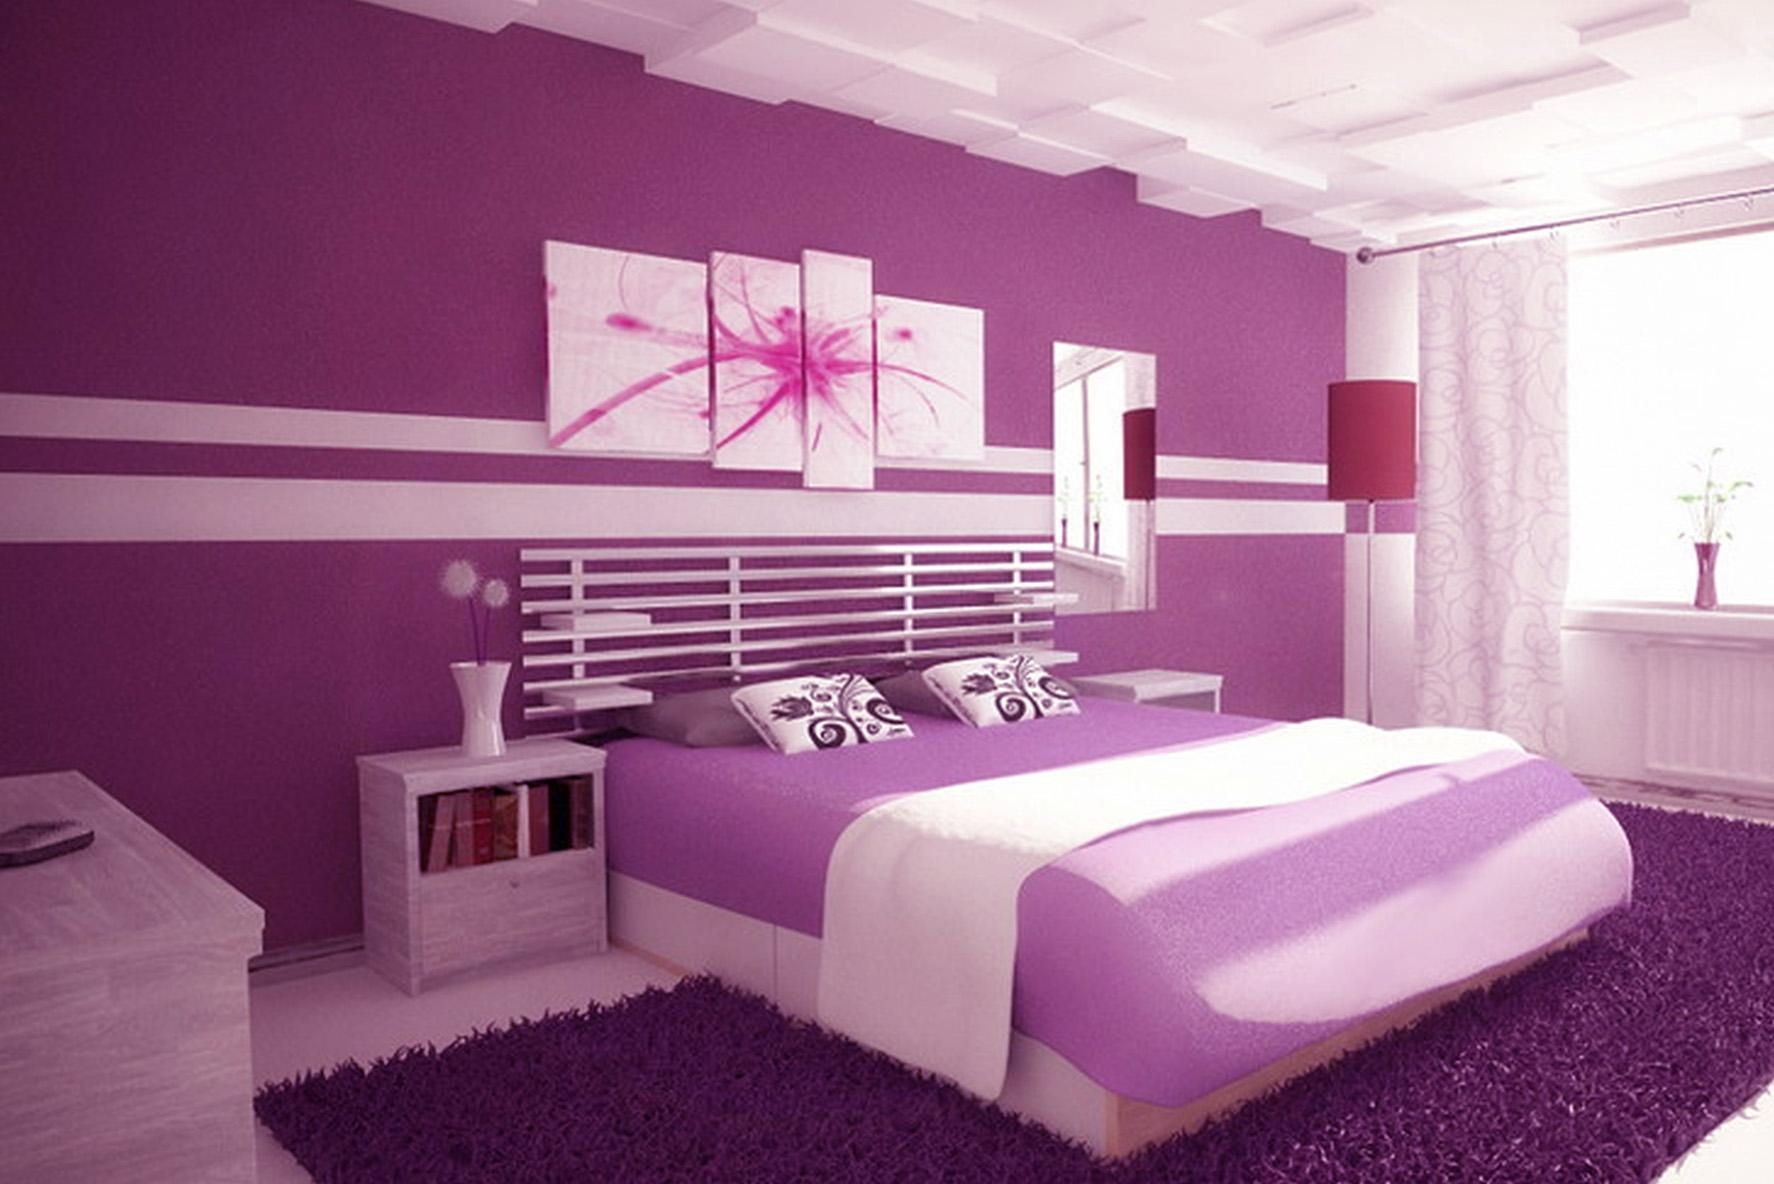 Wall Art Ideas Purple Wall Art for Bedroom Explore 4 of 20 s